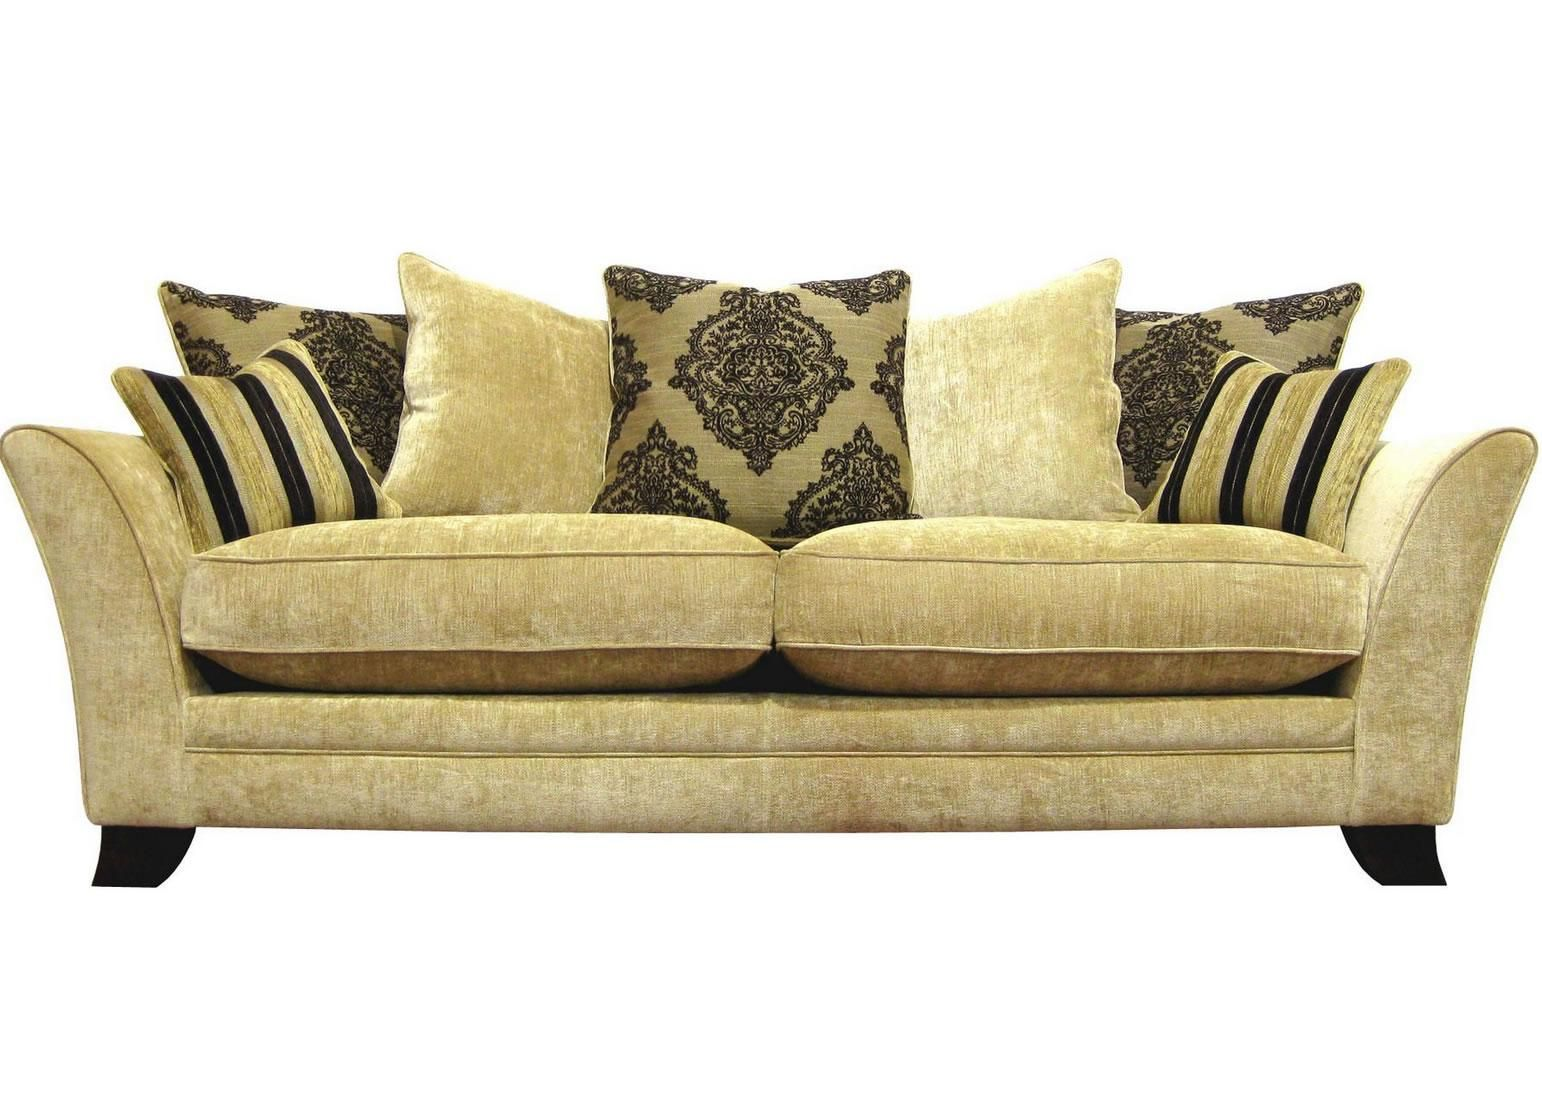 Ashley Manor Harriet Sofa In Mink Ashton Oz Design Collection From George Tannahill